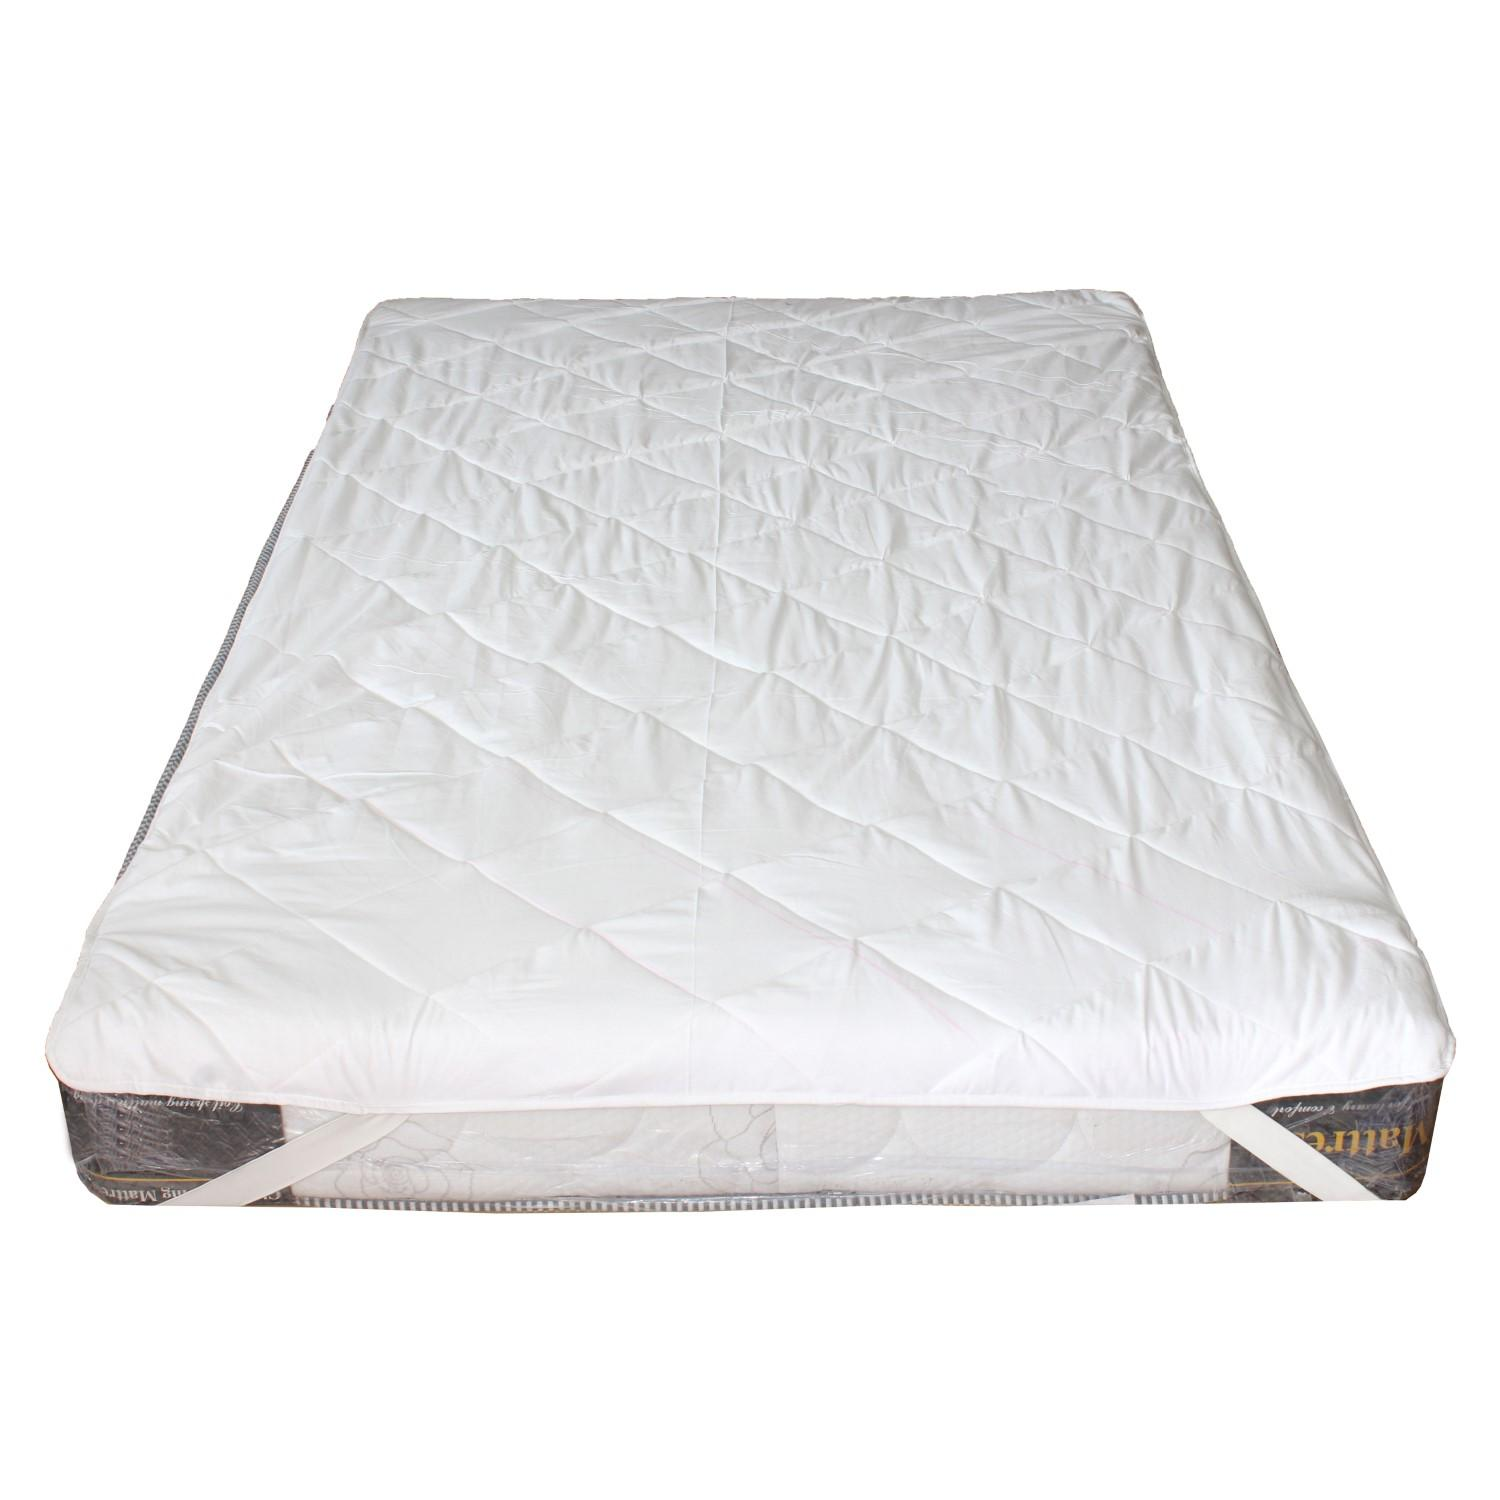 Double Bed Mattress Cover White Waterproof Mattress Protector Double Bed